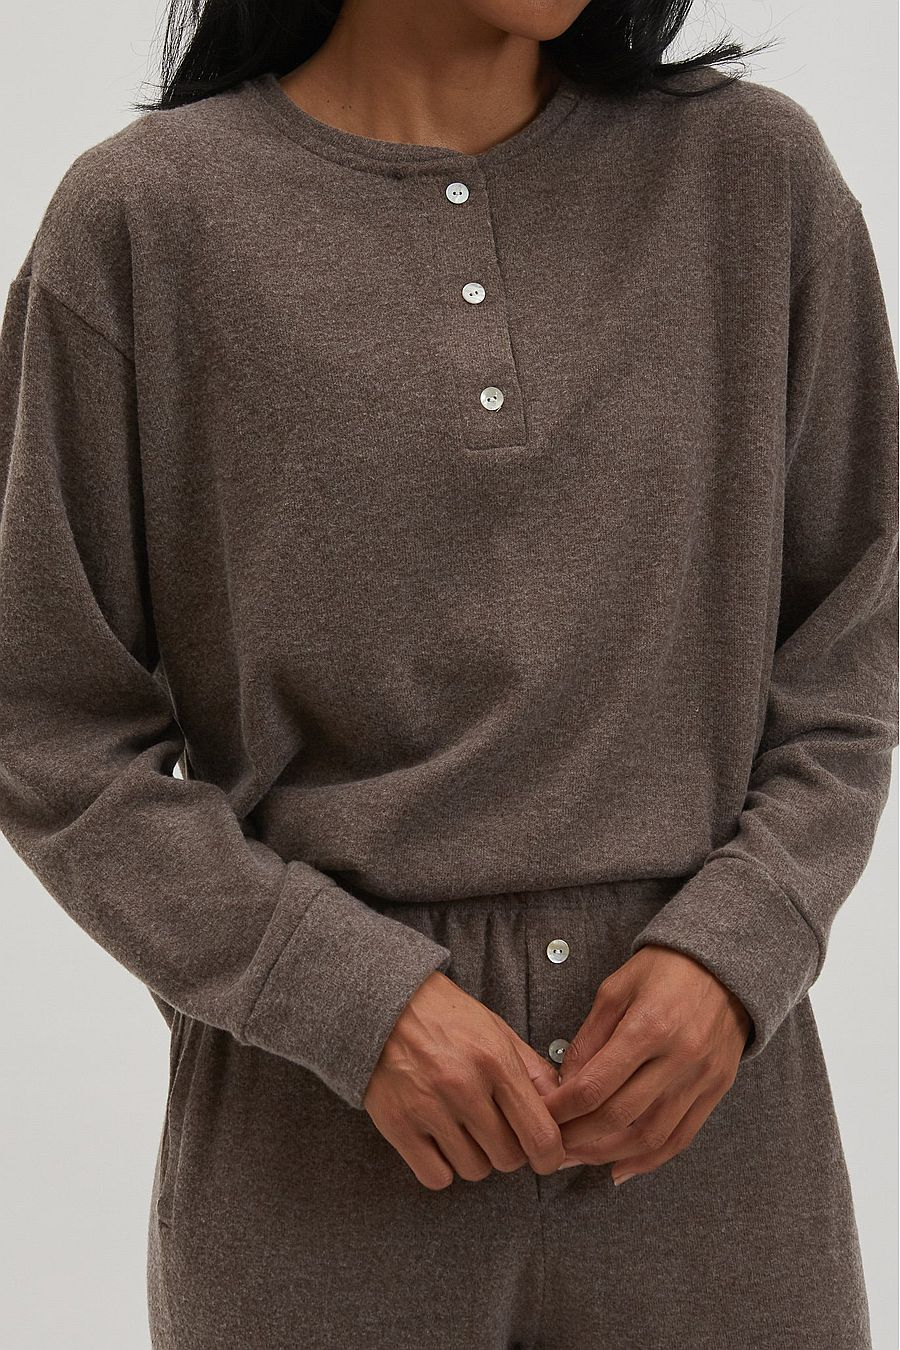 DONNI. Sweater Henley - Chocolate